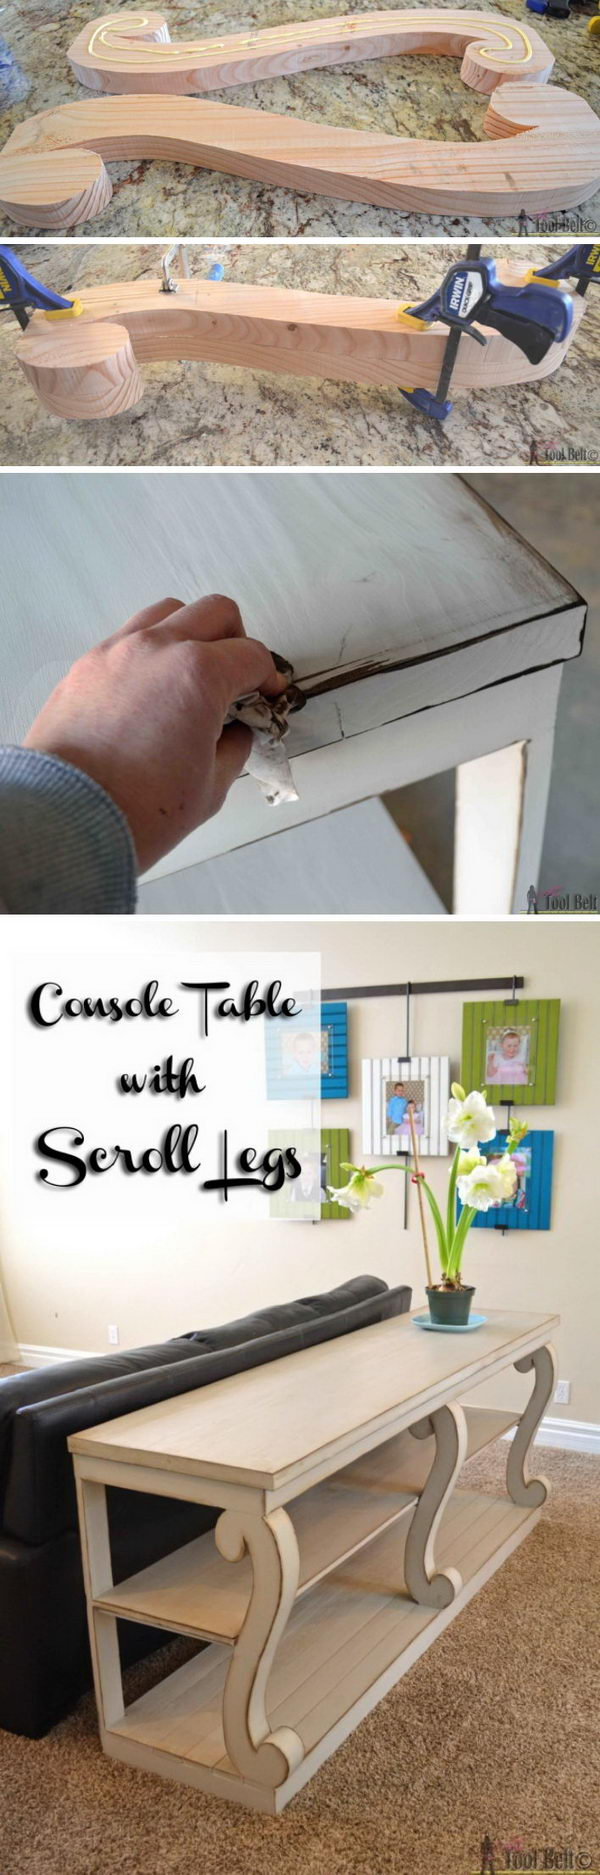 DIY Console Table With Scroll Legs.